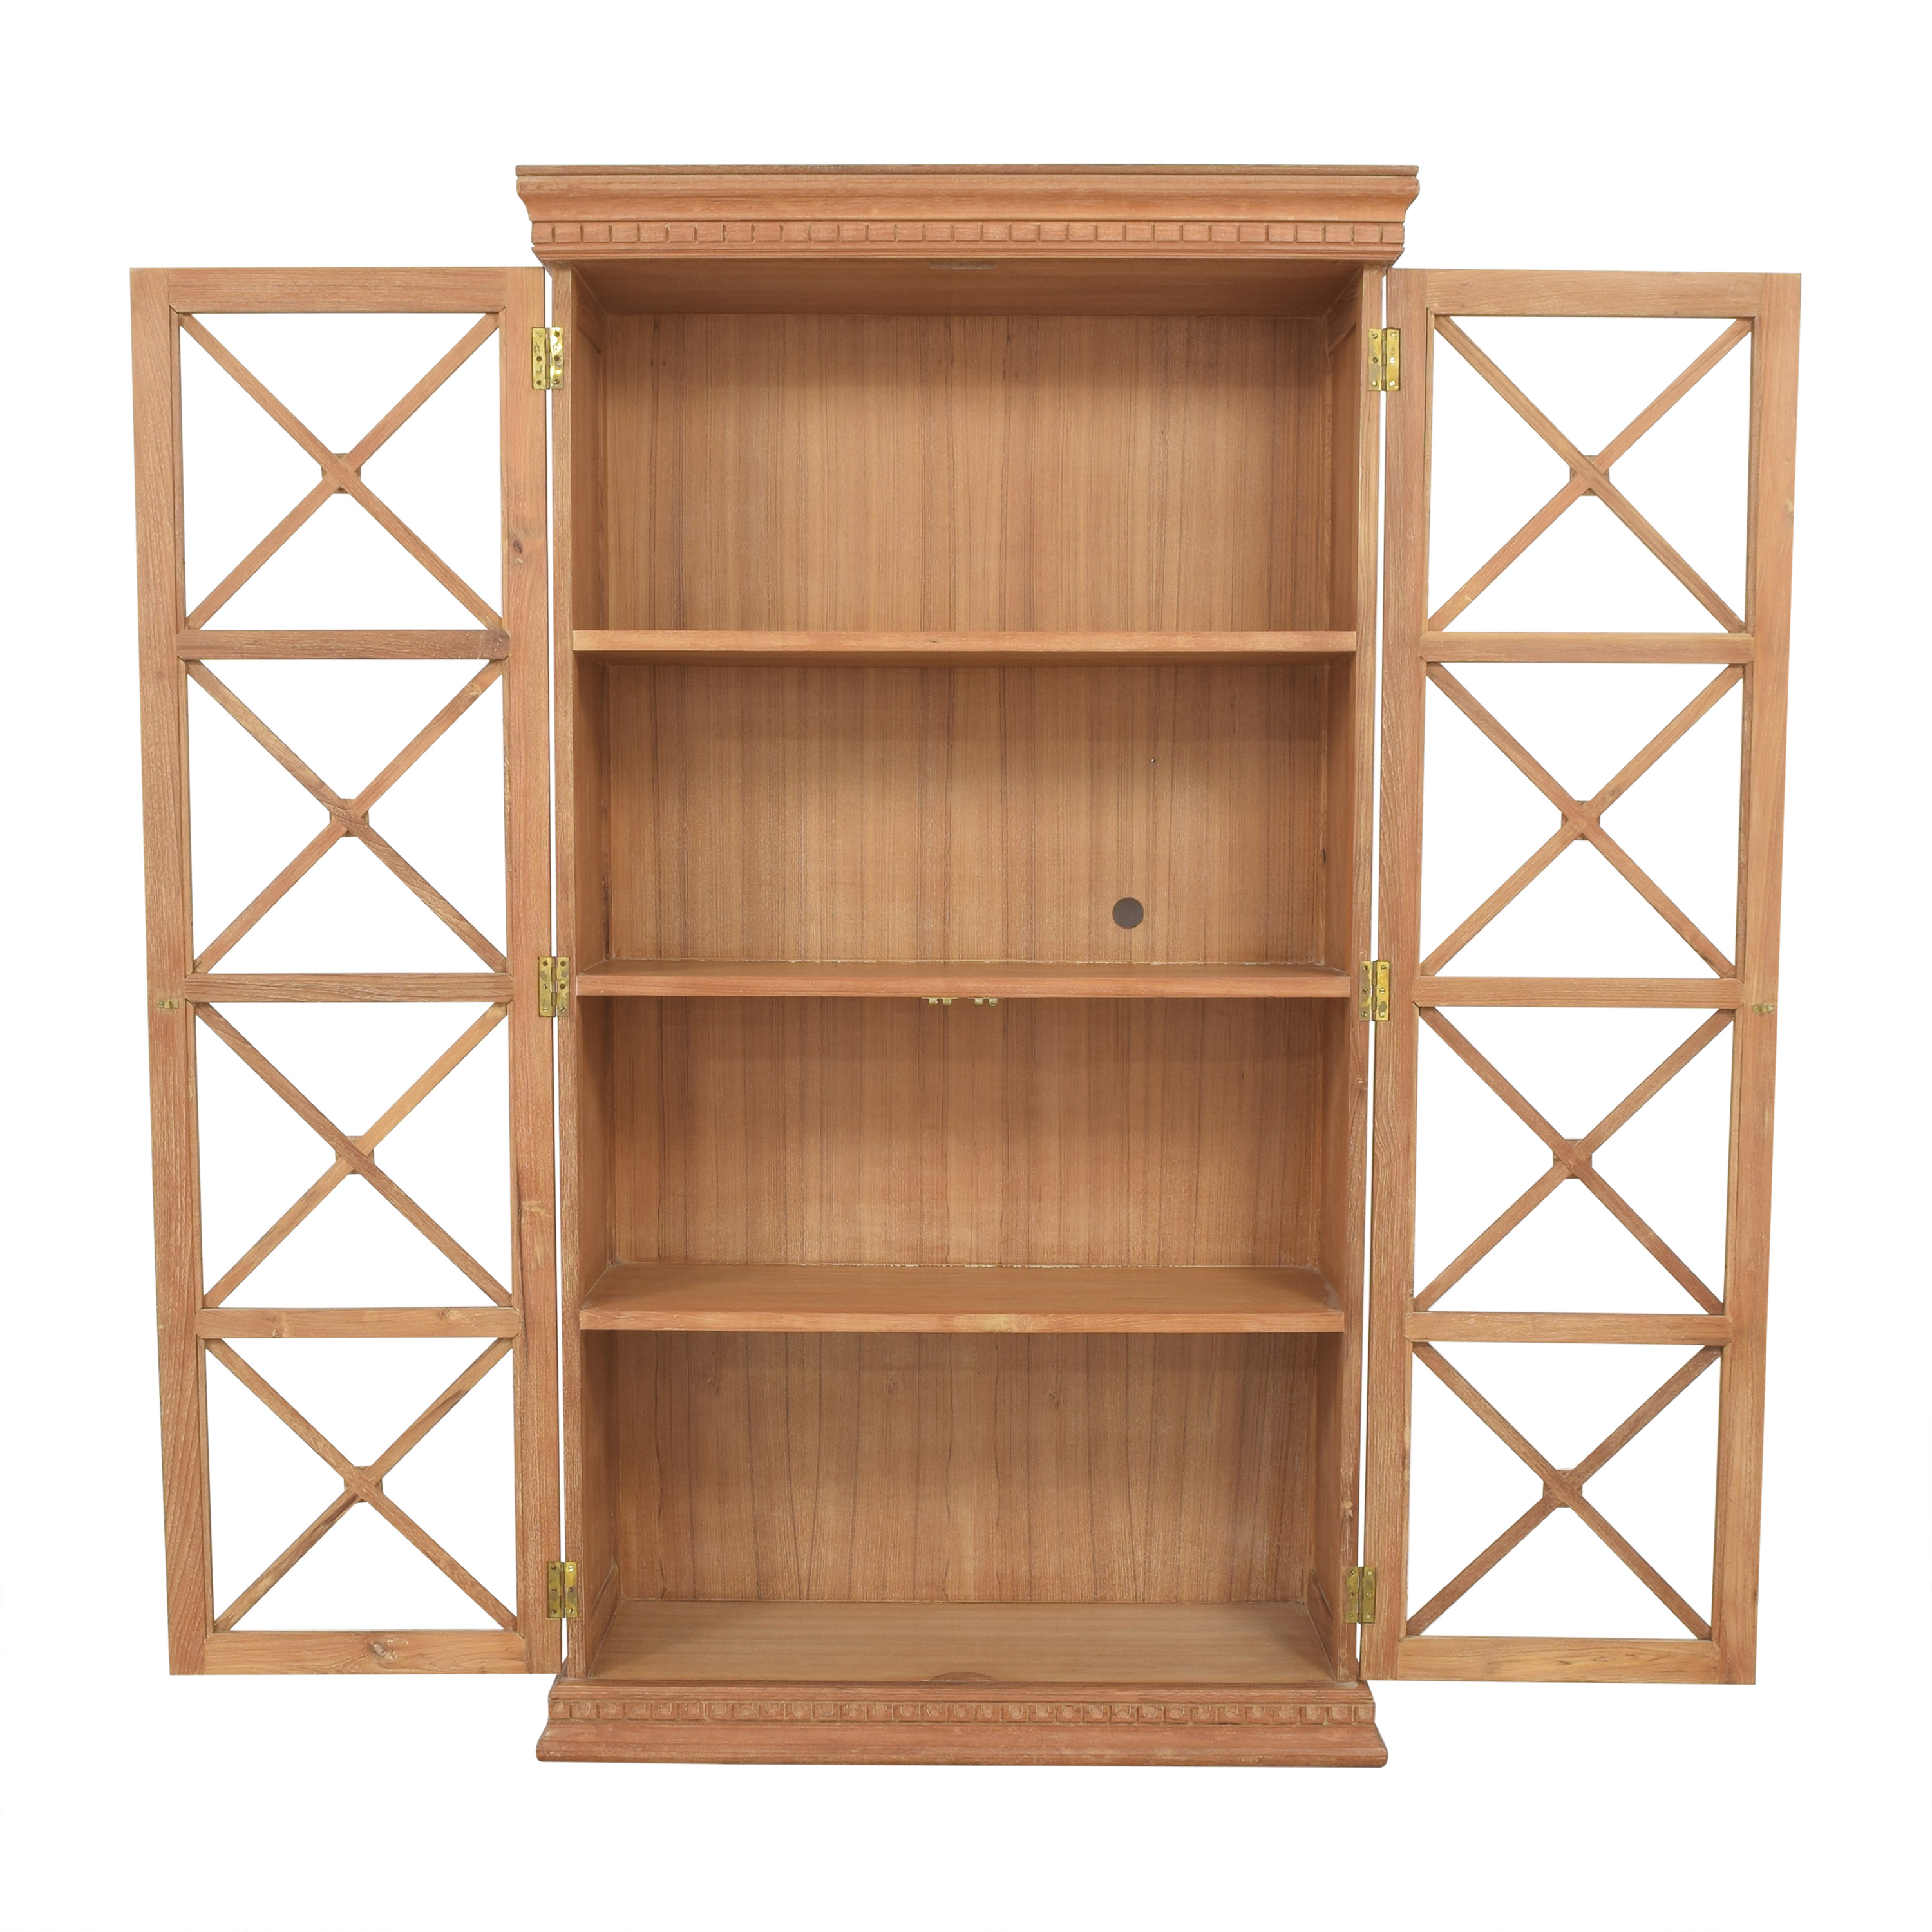 Restoration Hardware Restoration Hardware Bookcase for sale